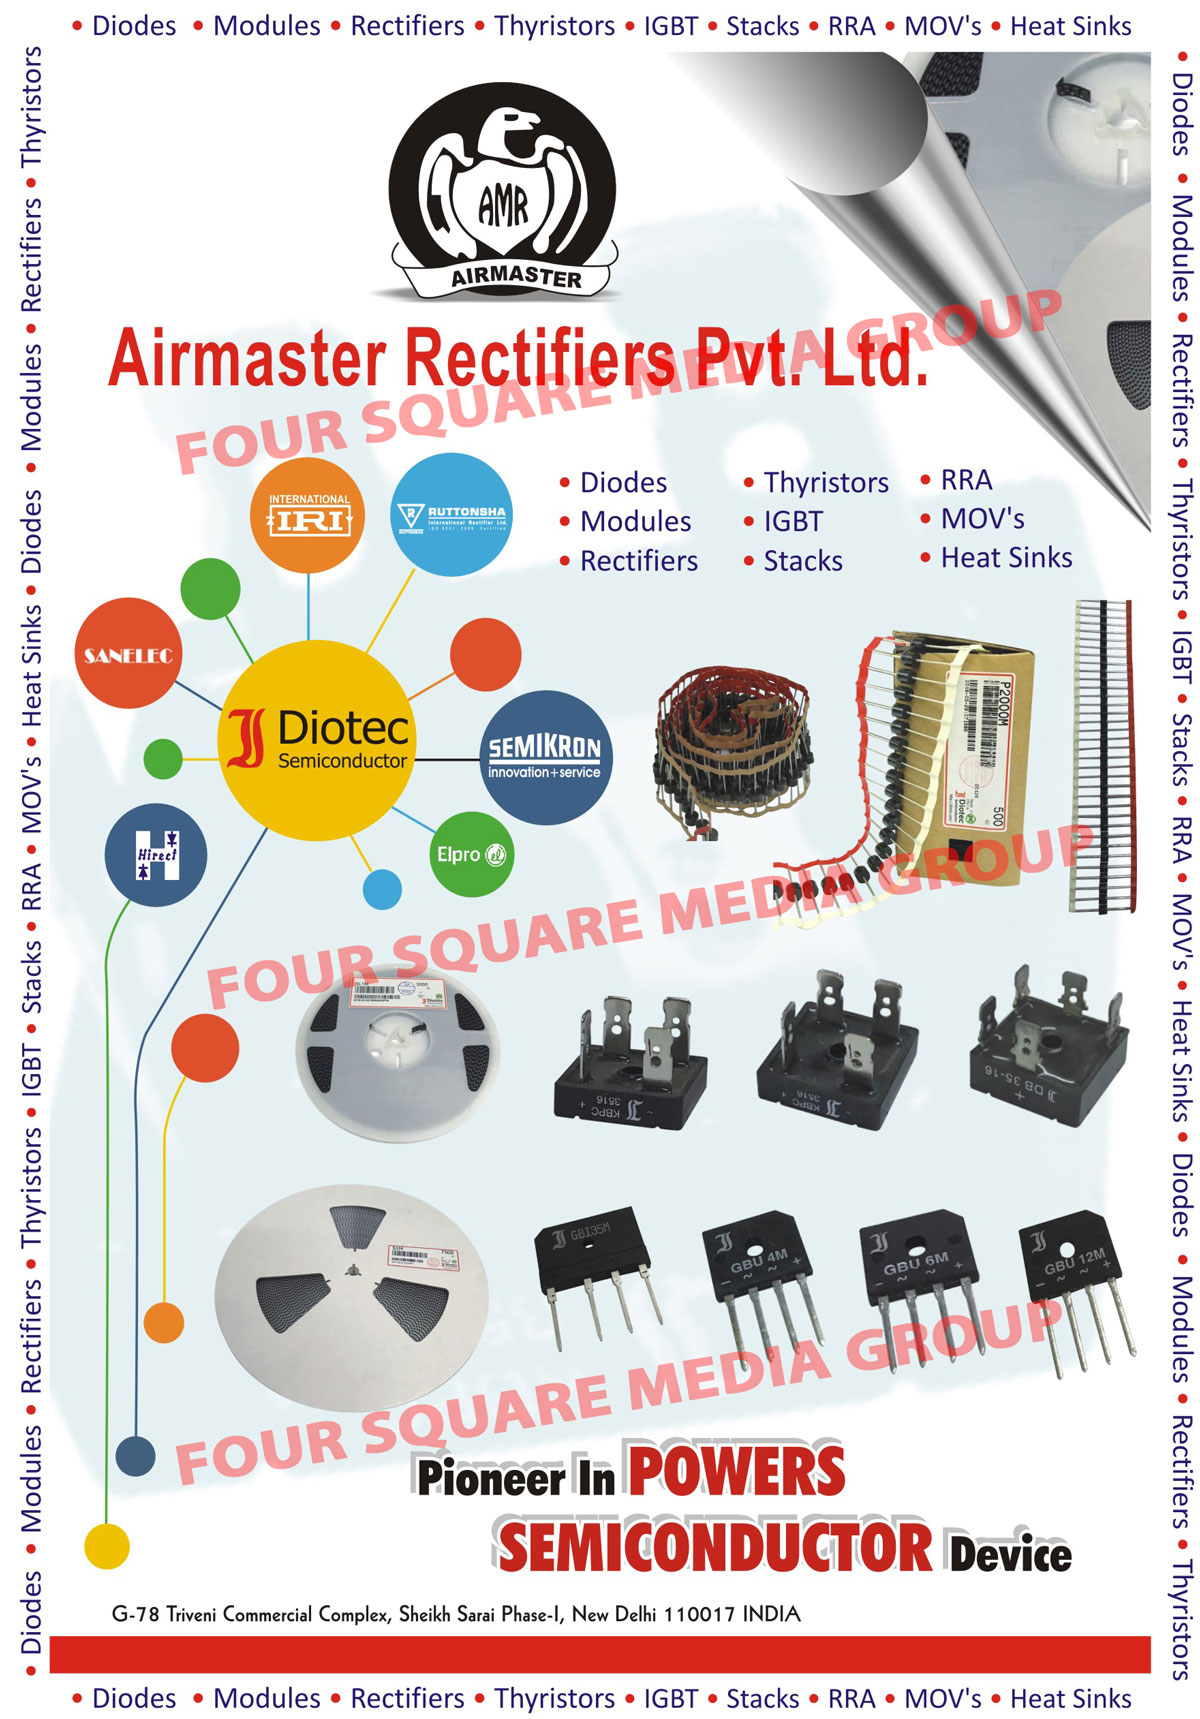 Power Semiconductor Devices, Diodes, Modules, Rectifiers, Thyristors, Igbt, Stacks, Heat Sinks, Power Diode Capsules, Bridge Rectifiers, Top Hat Diodes, Temperature Switches, Thyristor Modules, RRA, MOV, IGBT Drivers, Stud Diodes, Flat Diodes, Capsule Diode Thyristors, SMD, Axial, AVR